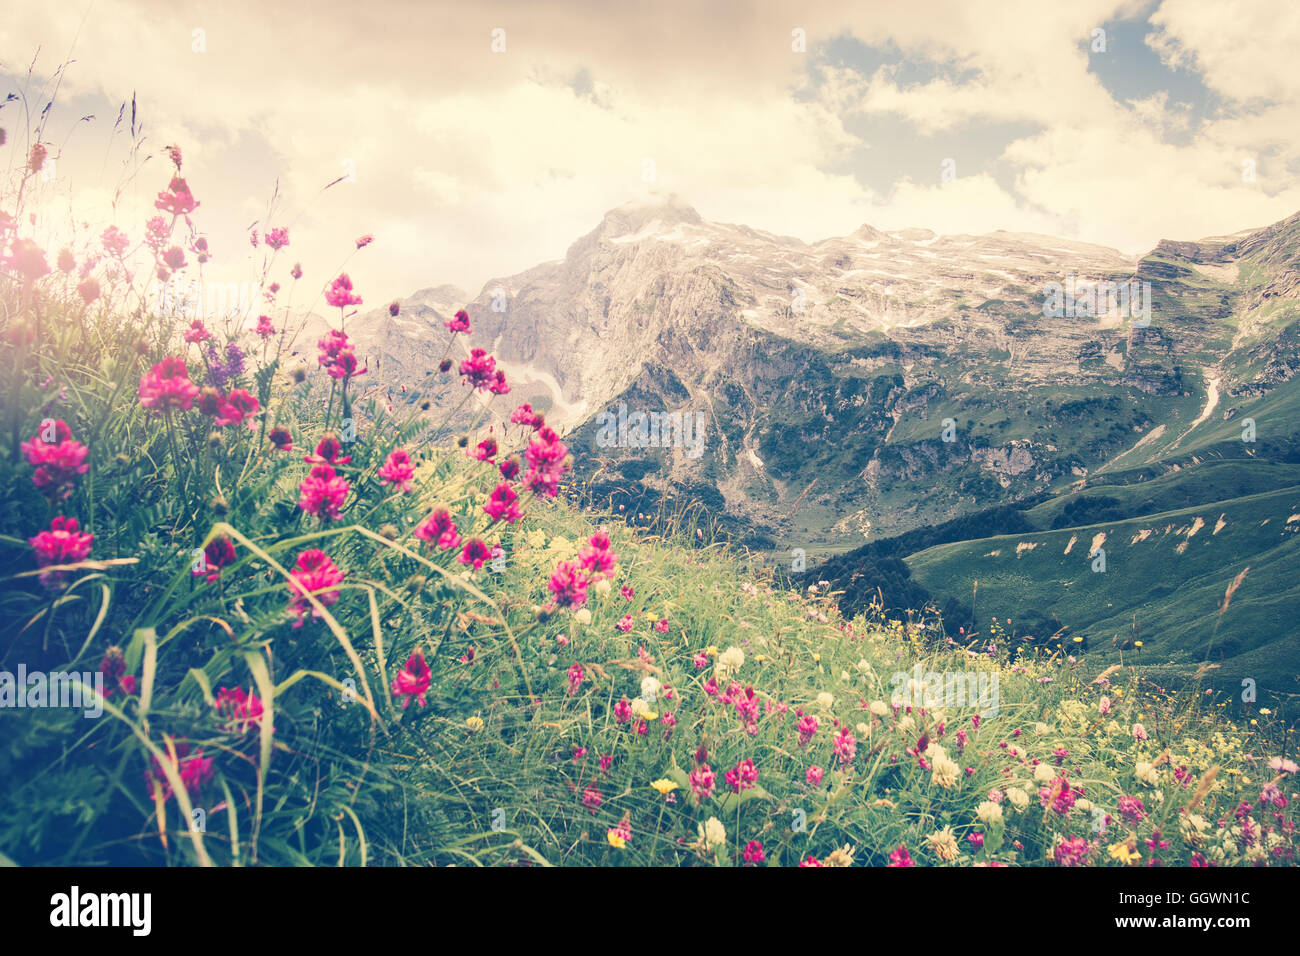 Rocky Fisht Mountains and green alpine valley with blooming pink flowers Landscape Summer Travel scenic view - Stock Image